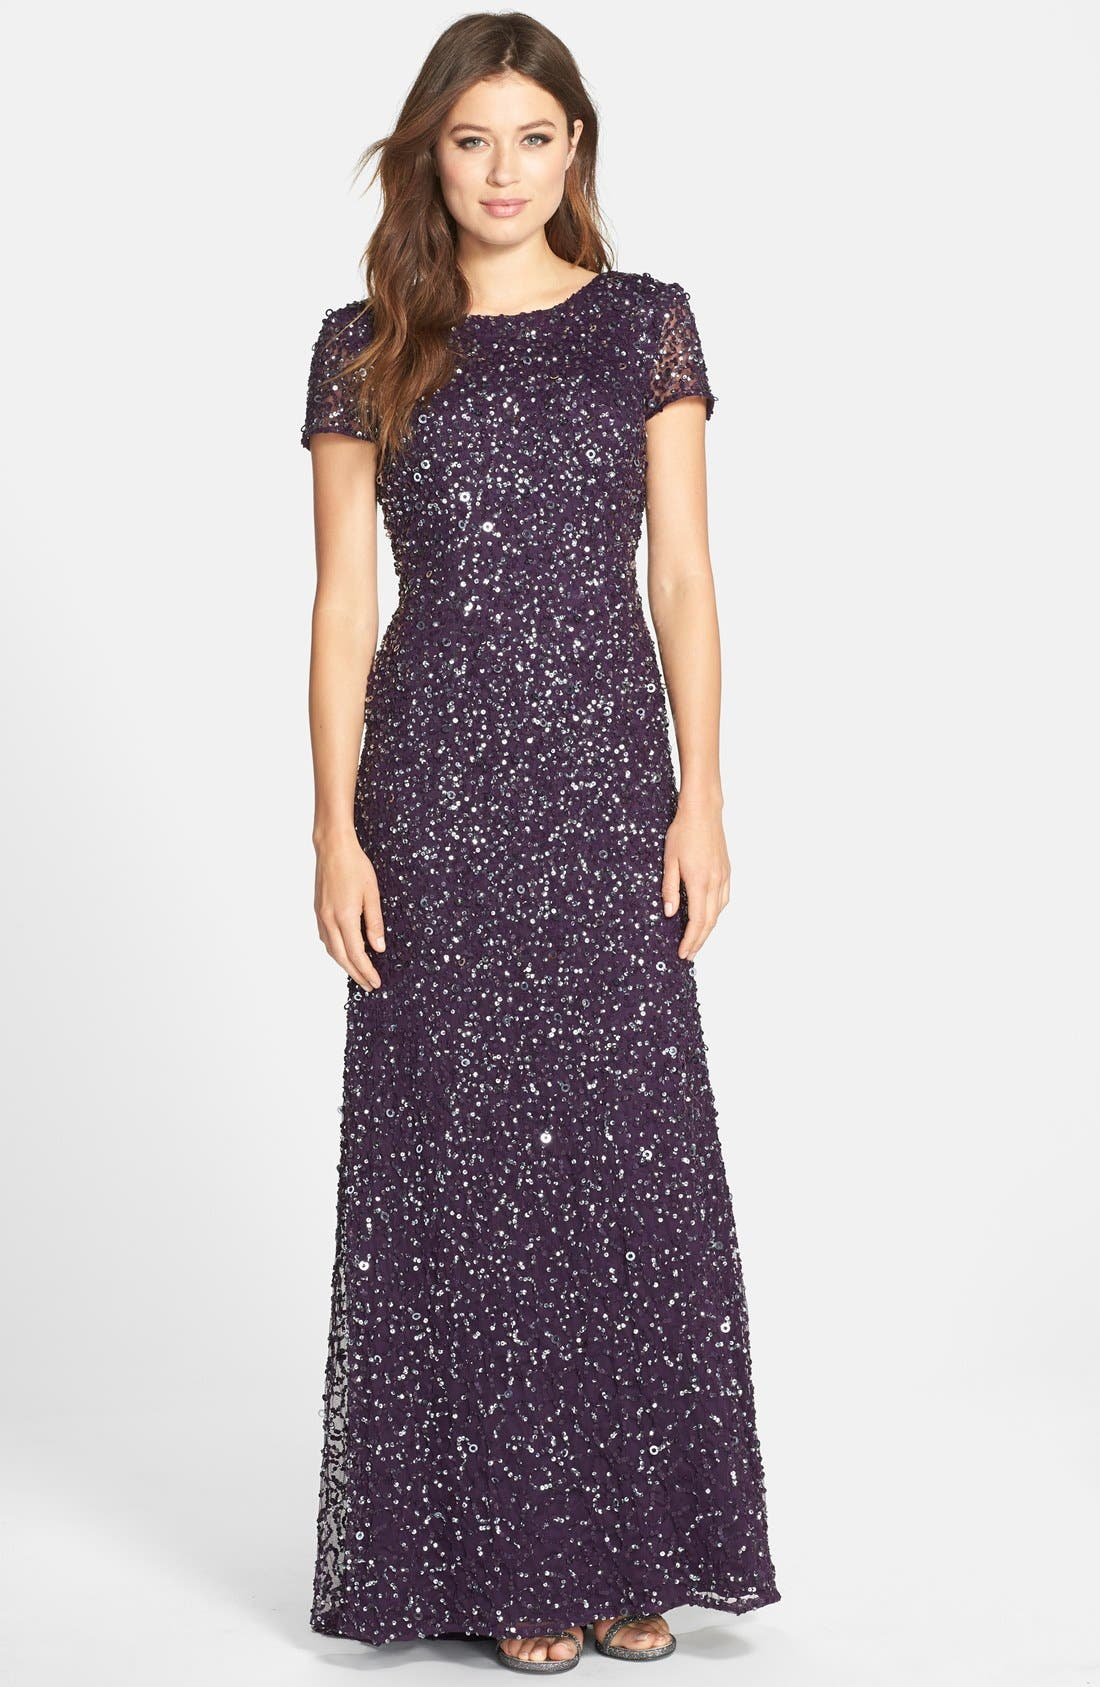 Alternate Image 1 Selected - Adrianna Papell Short Sleeve Sequin Mesh Gown (Regular & Petite)